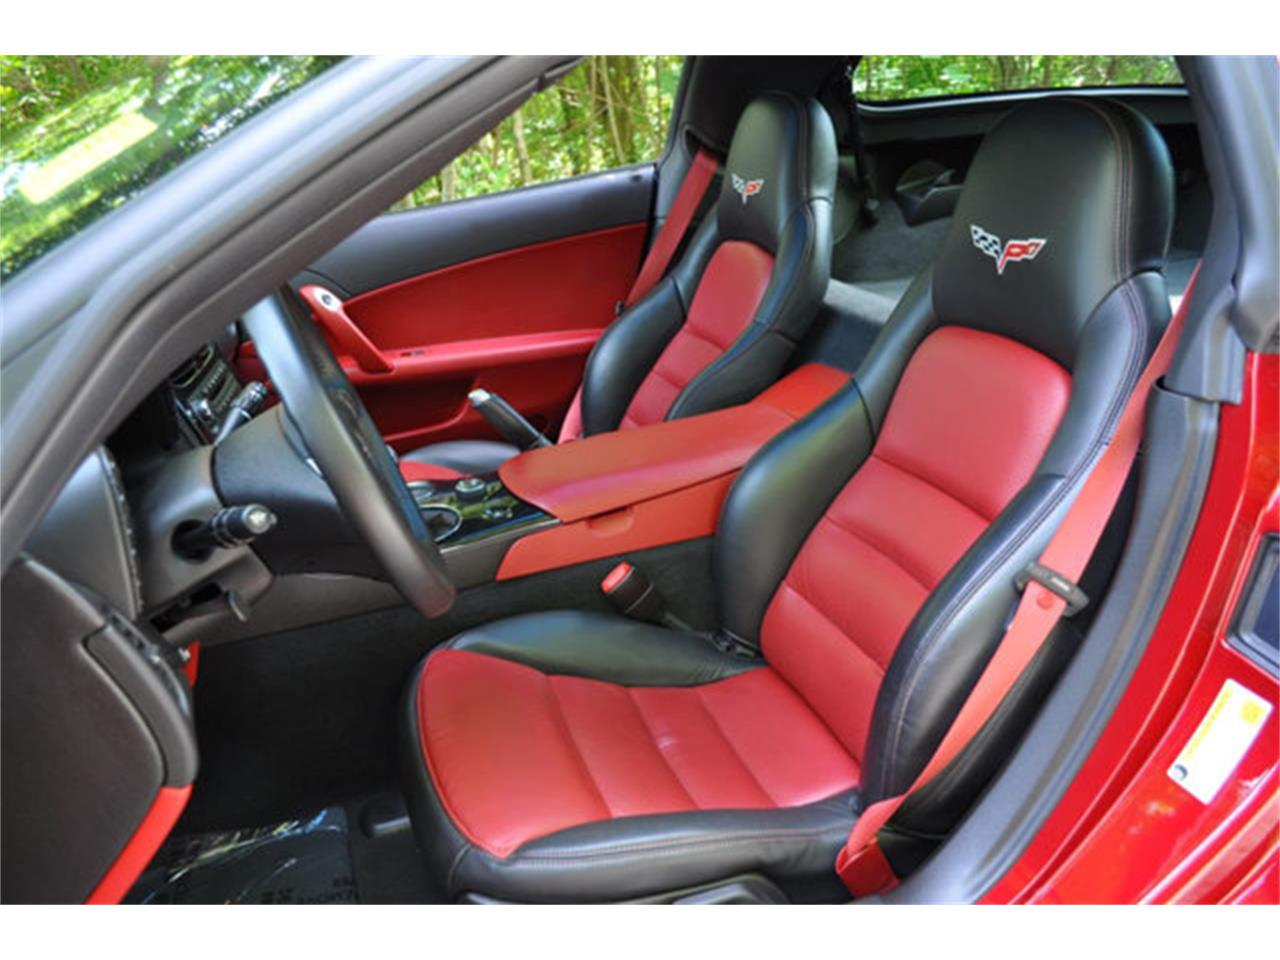 Large Picture of 2008 Chevrolet Corvette located in New York Offered by Prestige Motor Car Co. - QFIY